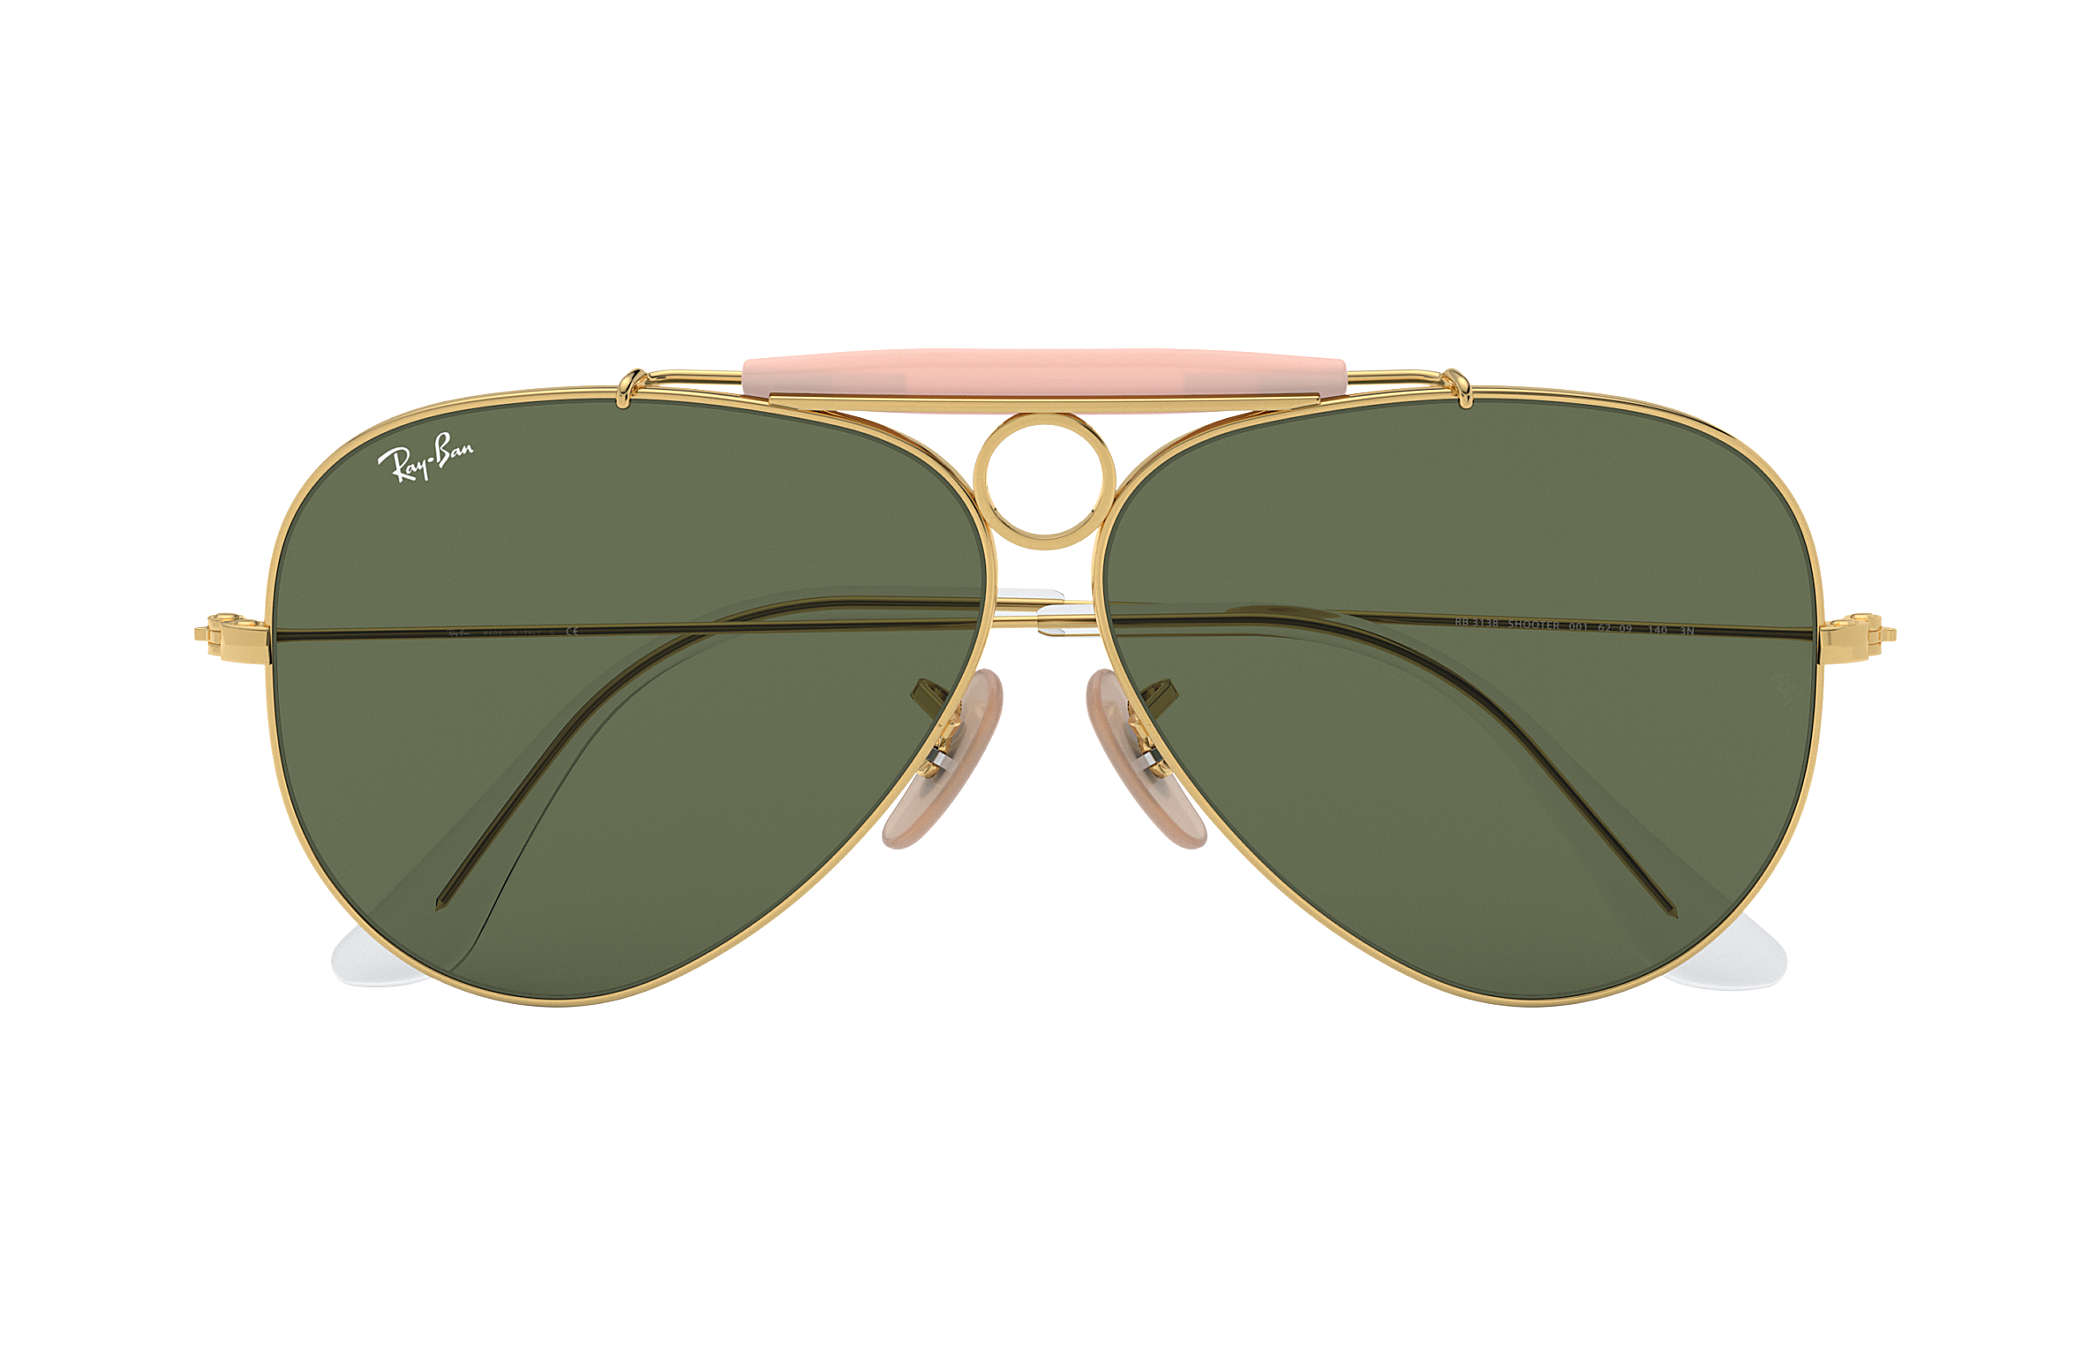 Ray ban sunglasses with price - Ray Ban 0rb3138 Shooter Gold Sun